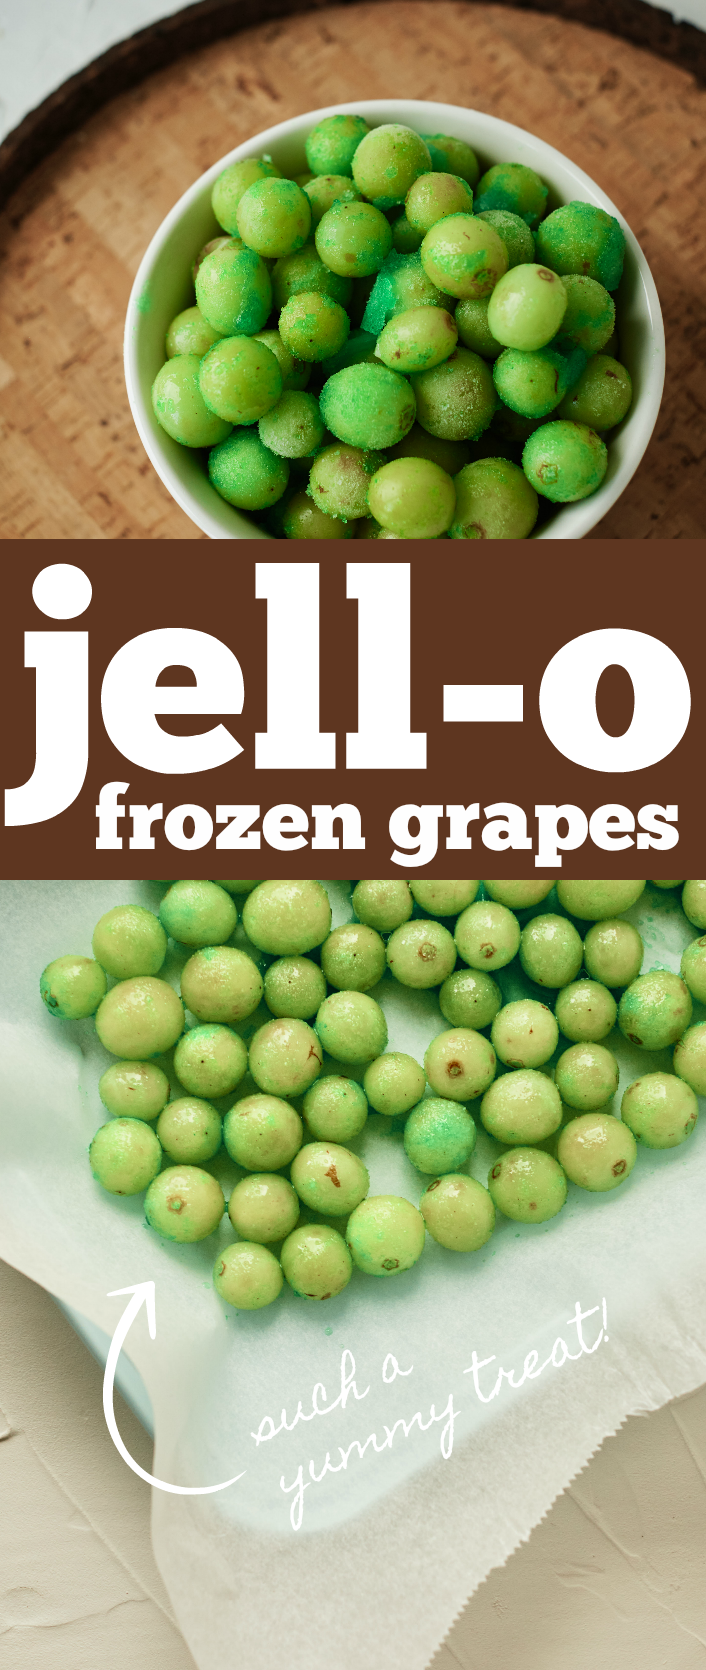 How to make jello frozen grapes for a delicious healthy snack treat option!